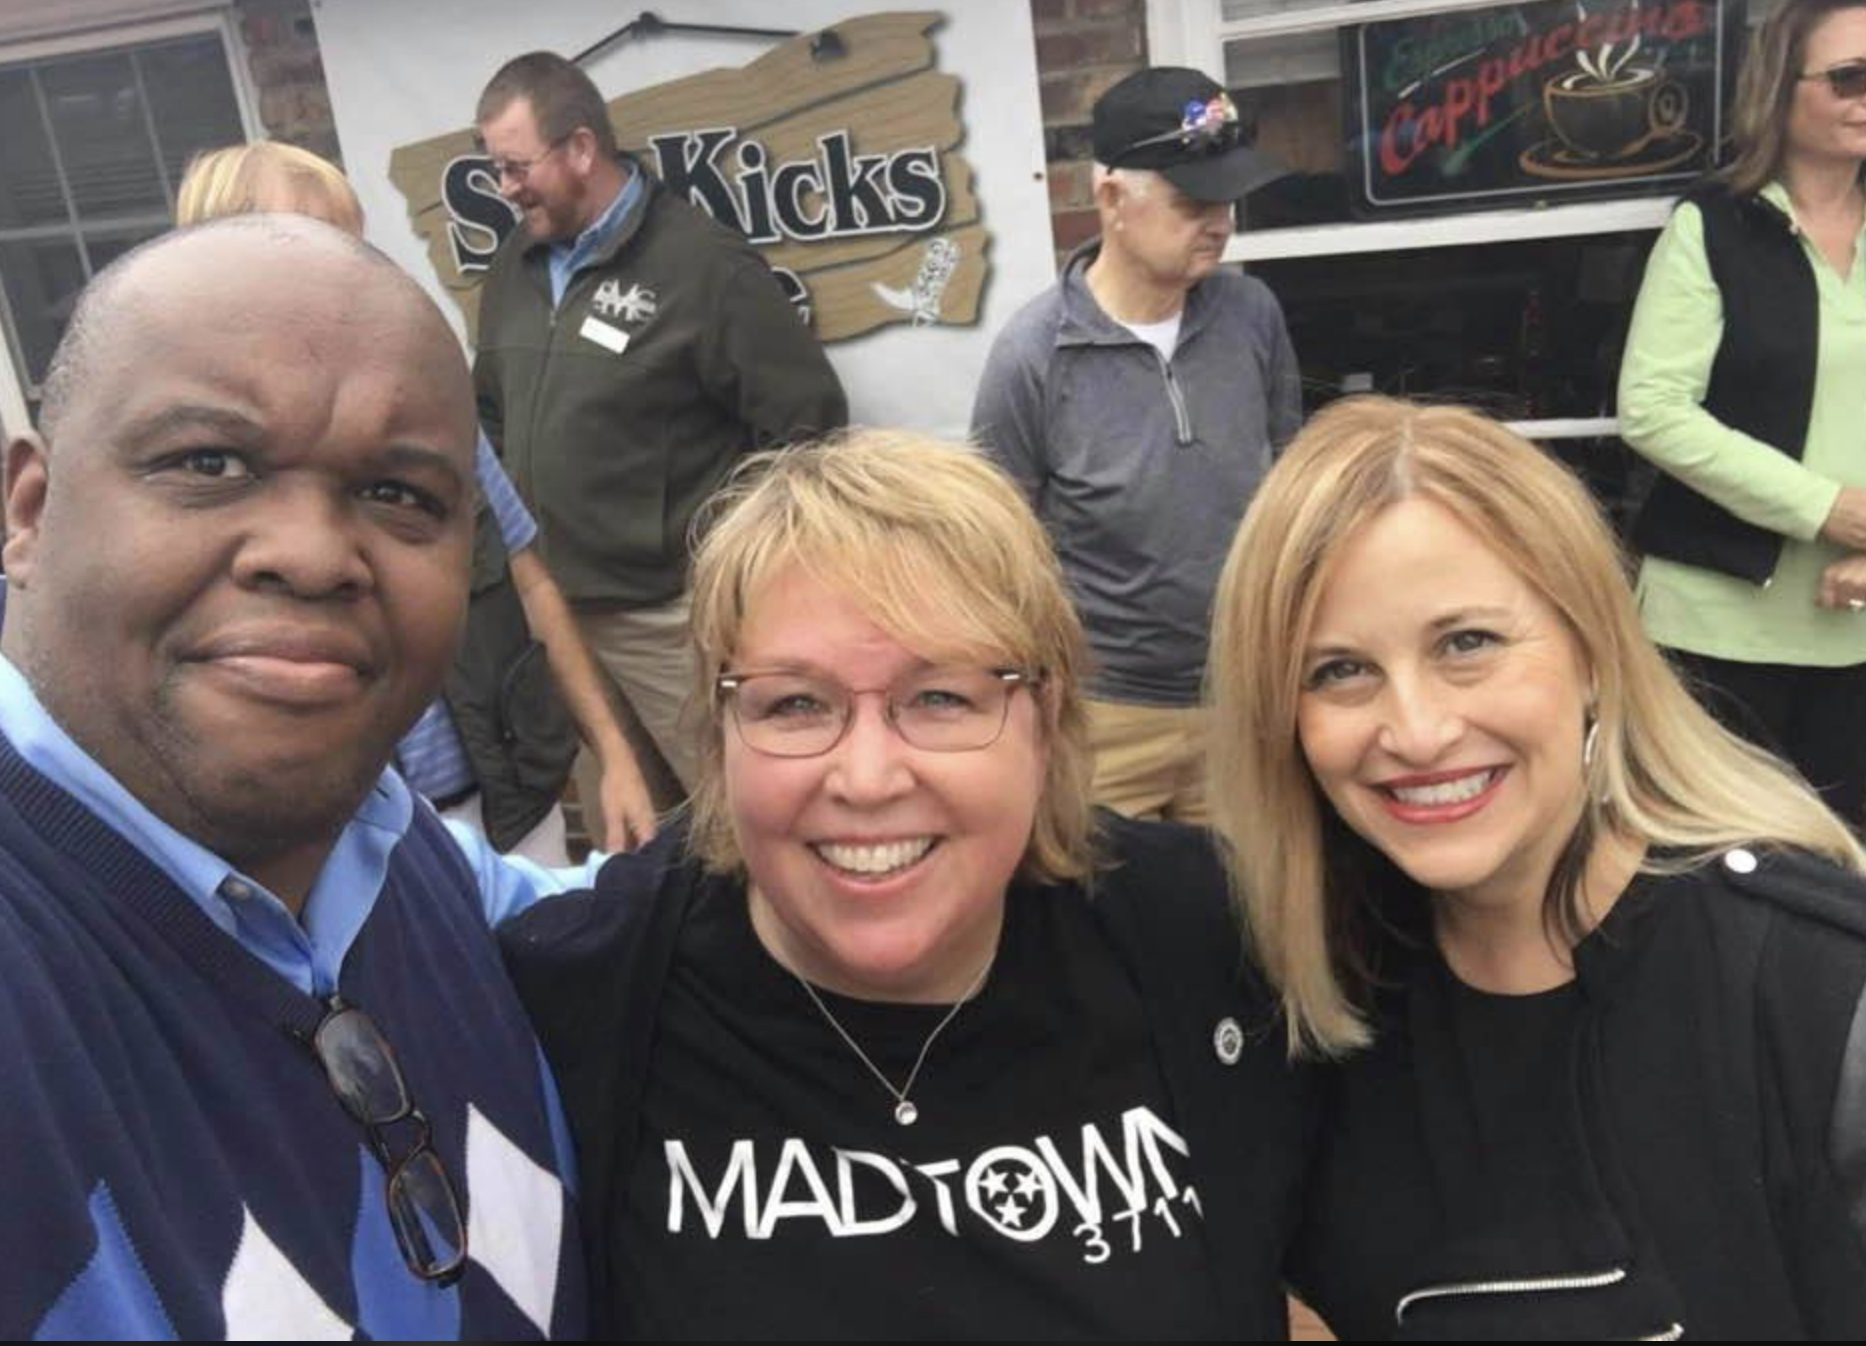 McMurry, Councilmember Nancy Vanreece, and former Mayor Megan Barry in an untitled photo. (Photo: Facebook)